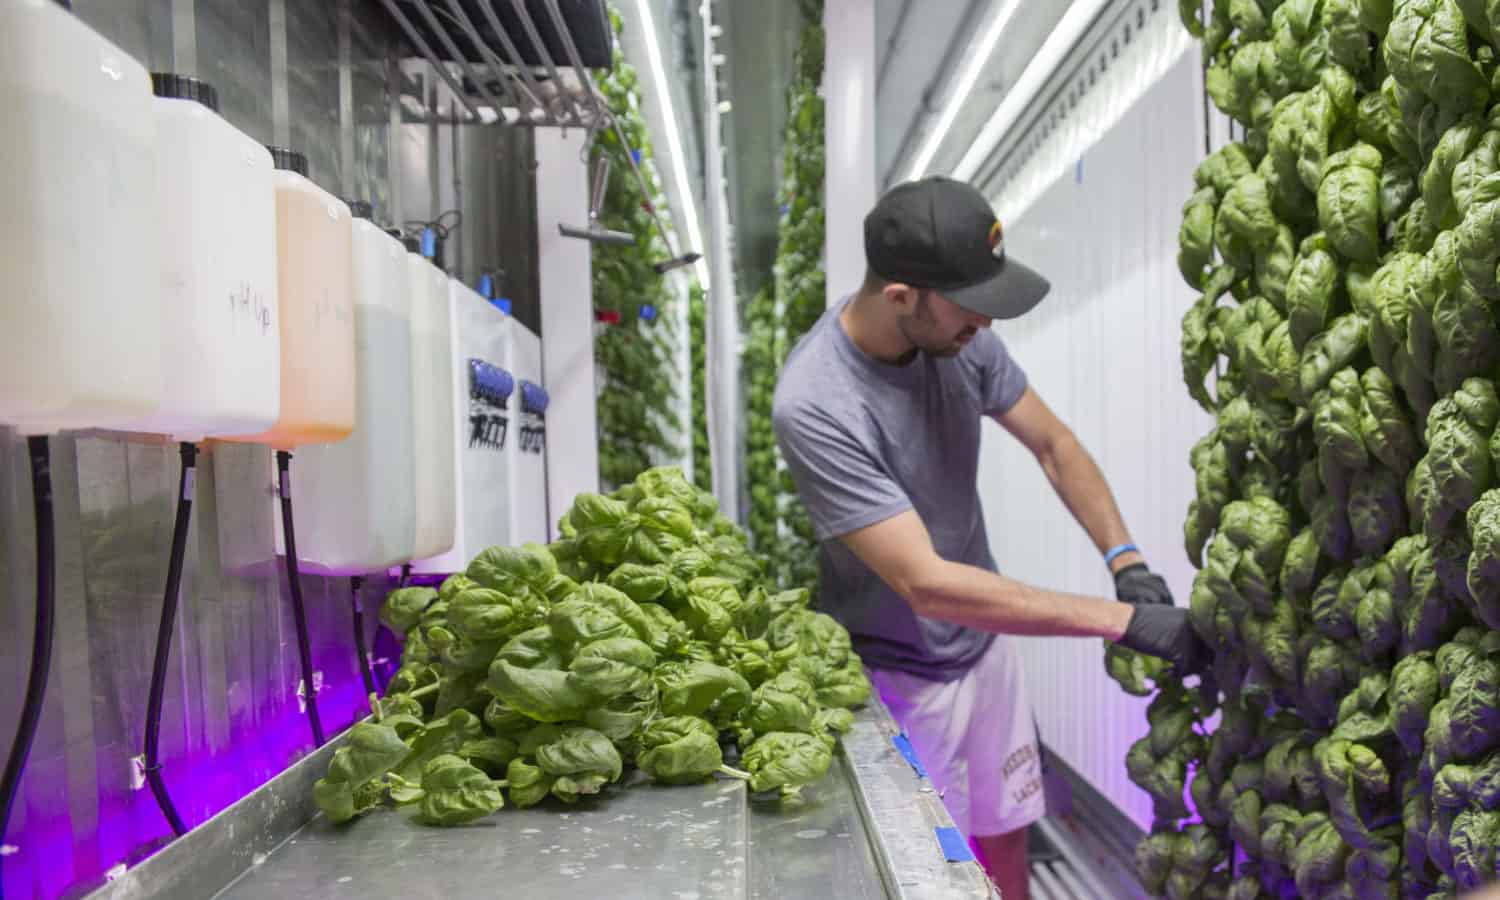 Square Roots, a high-tech indoor farming accelerator in the heart of Brooklyn, provides fresh, sustainable produce twelve months a year.